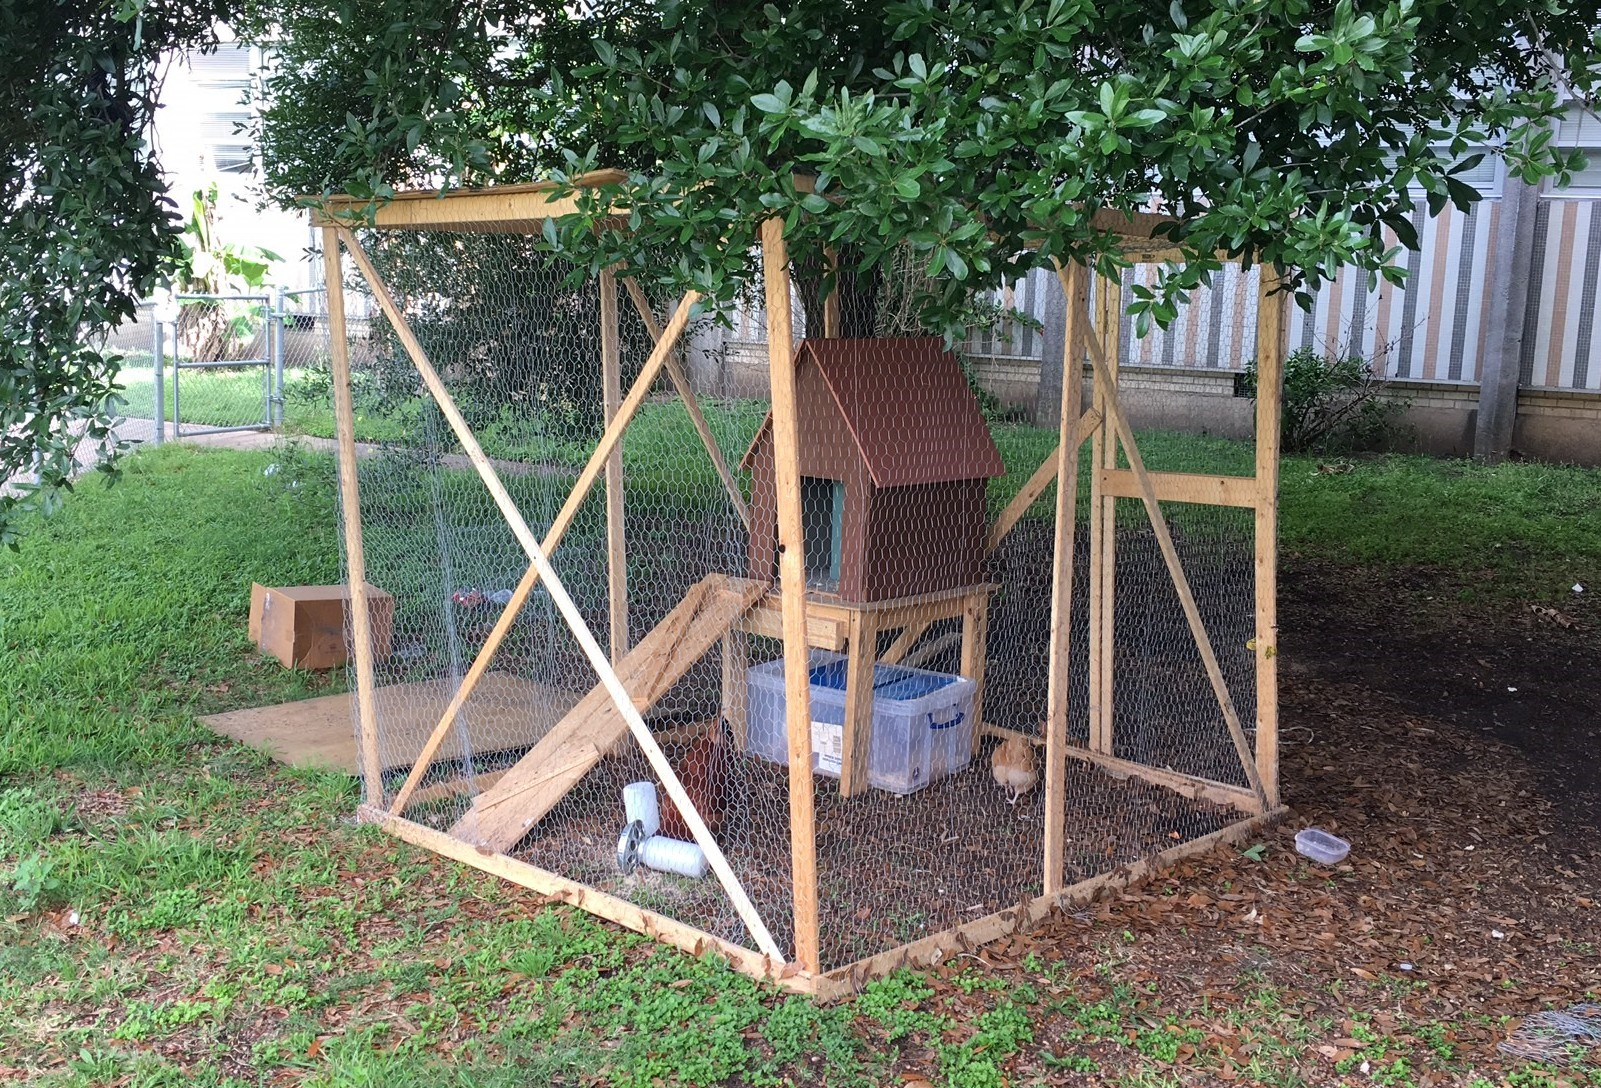 Our Linked Learning Chicken Coop sits in the Courtyard